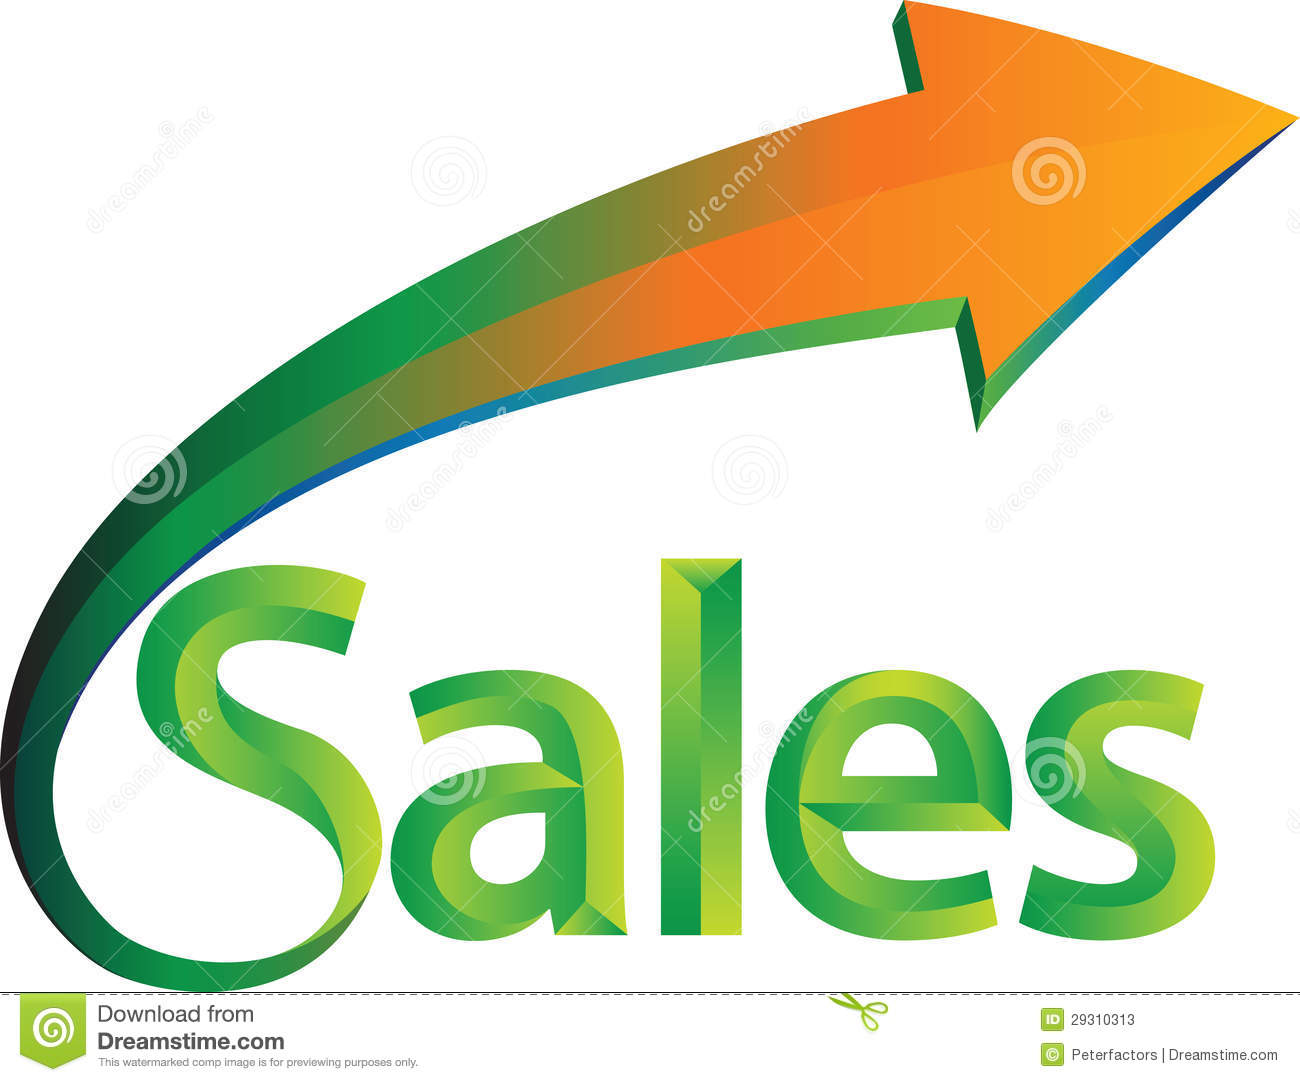 Sales is up